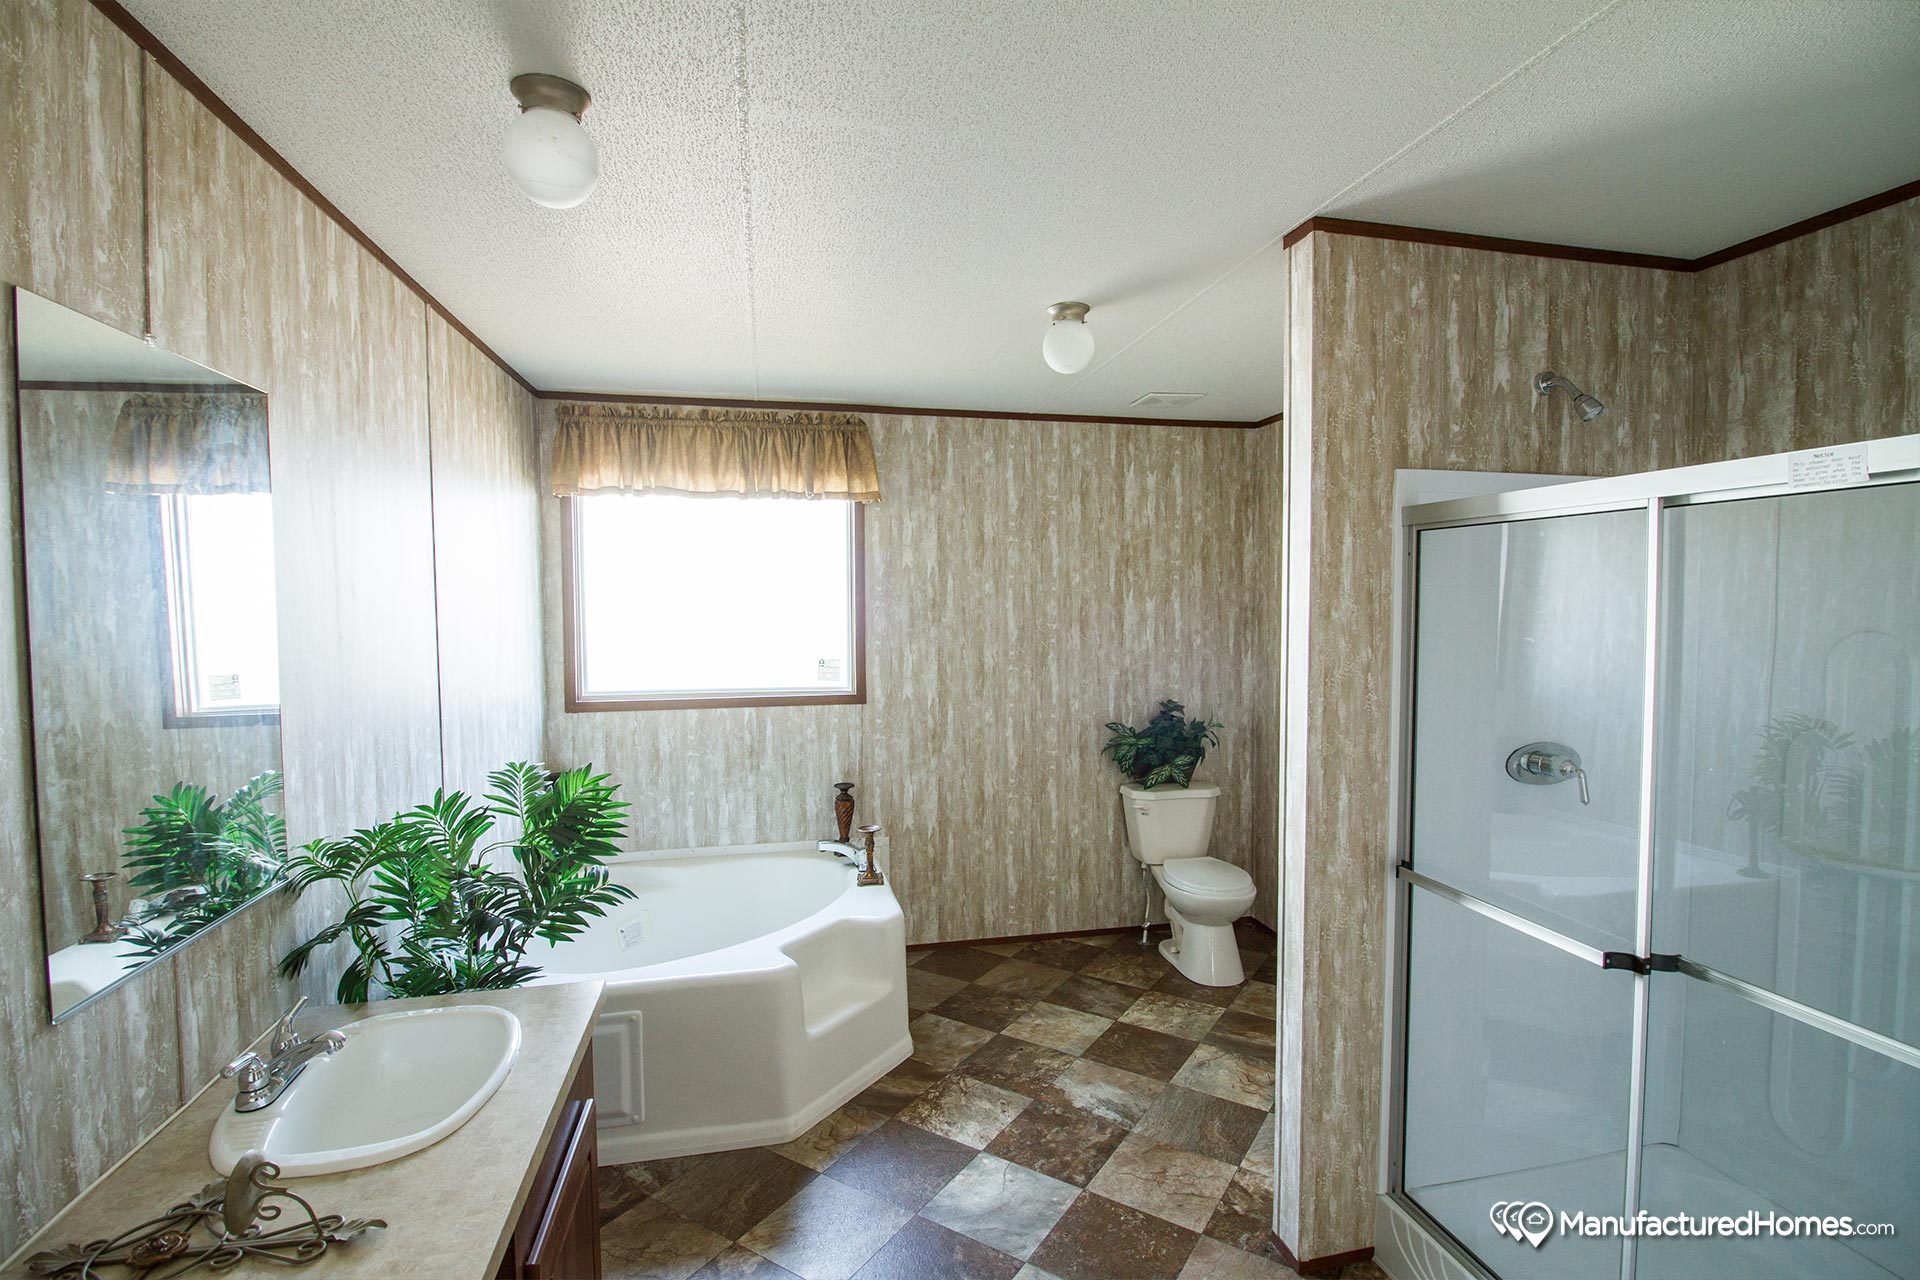 Bigfoot / 9207 - Bathroom